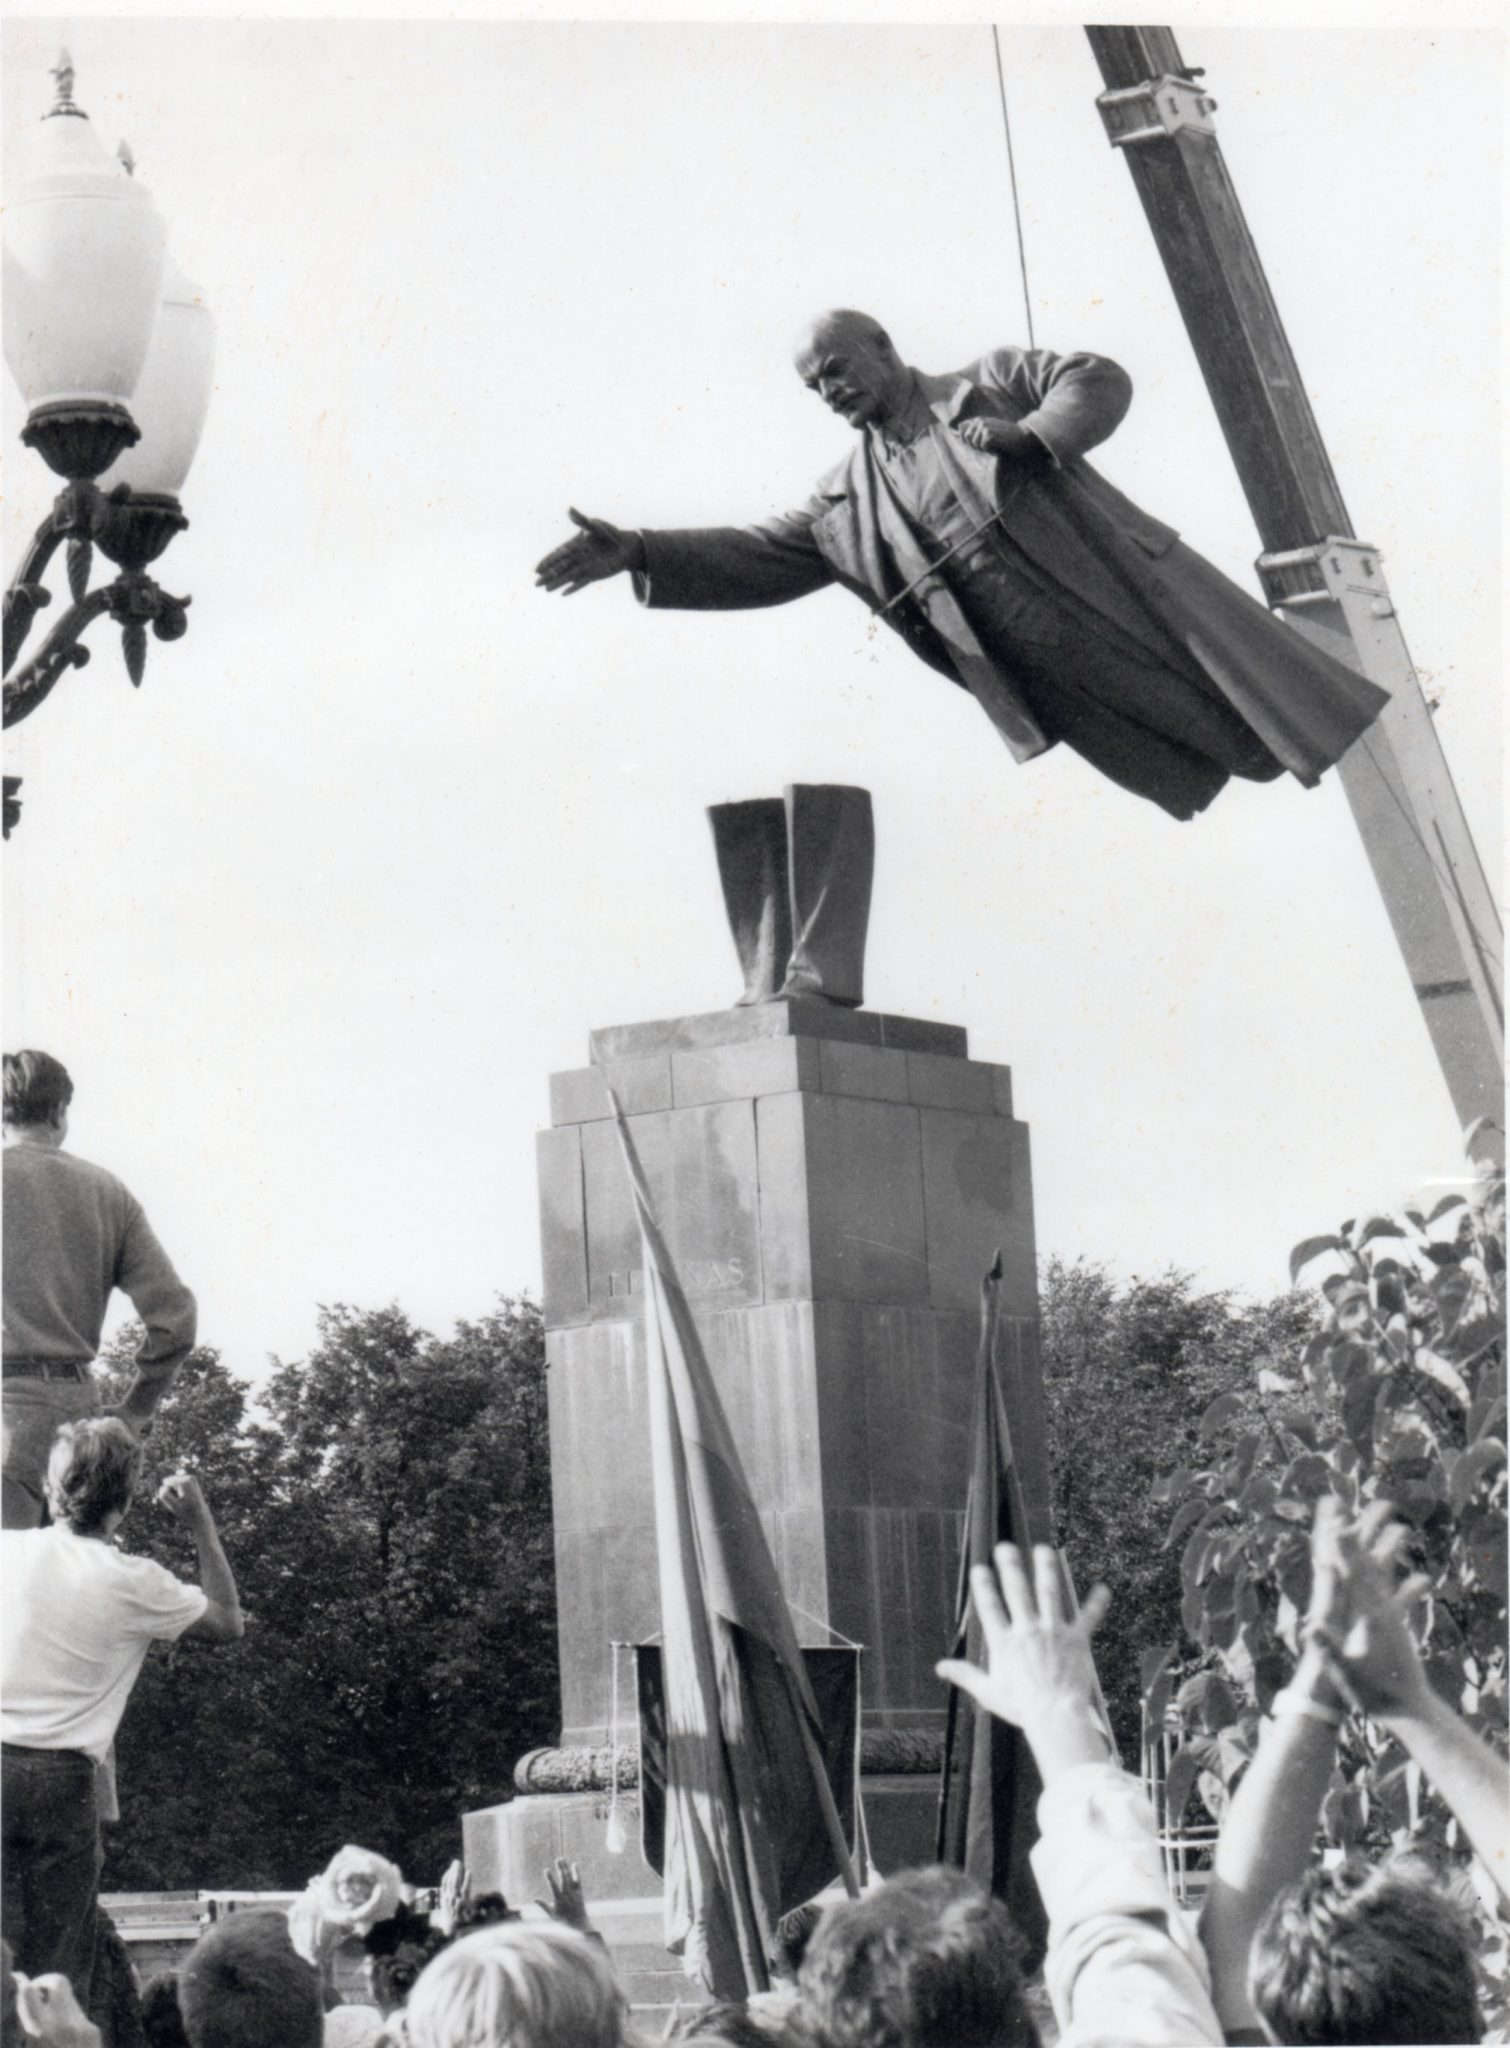 August 23, 1991: Lenin is Torn Down